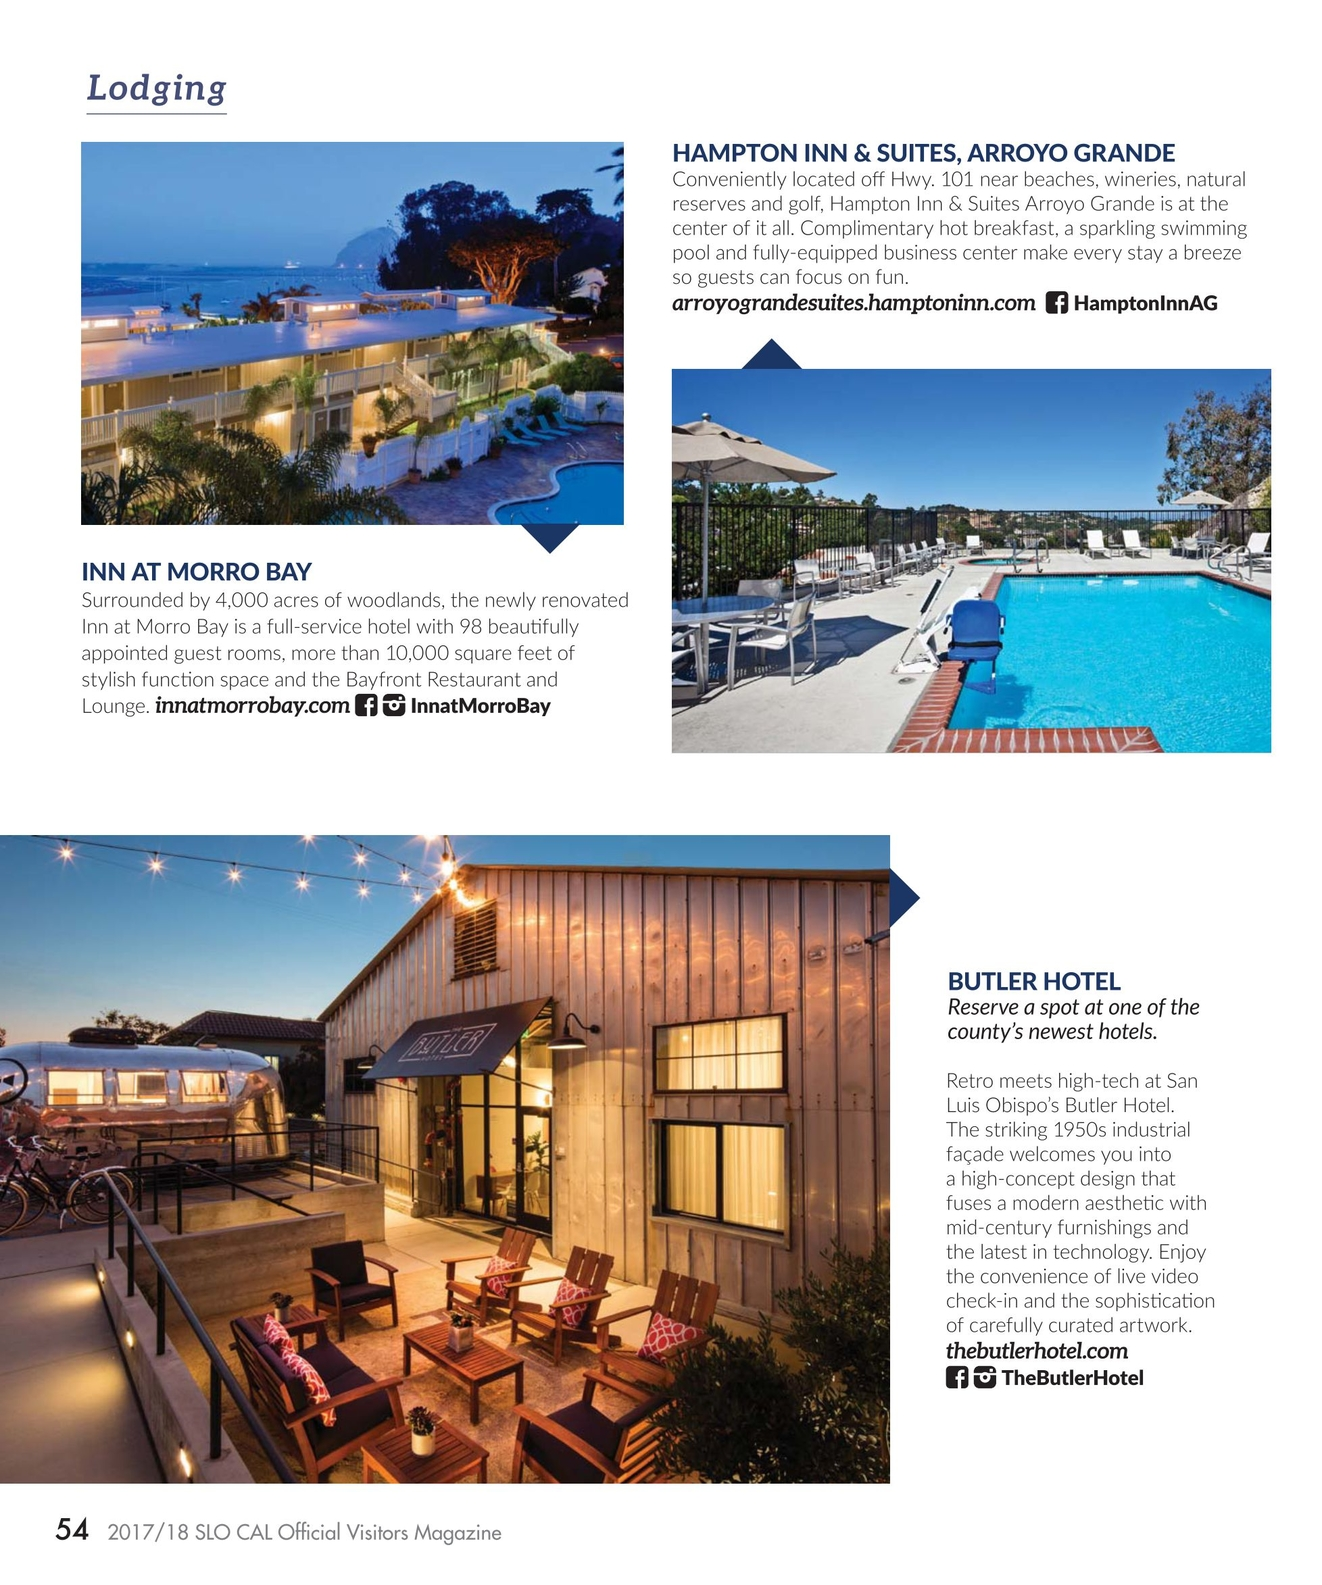 2017/18 SLO CAL Official Visitors Magazine